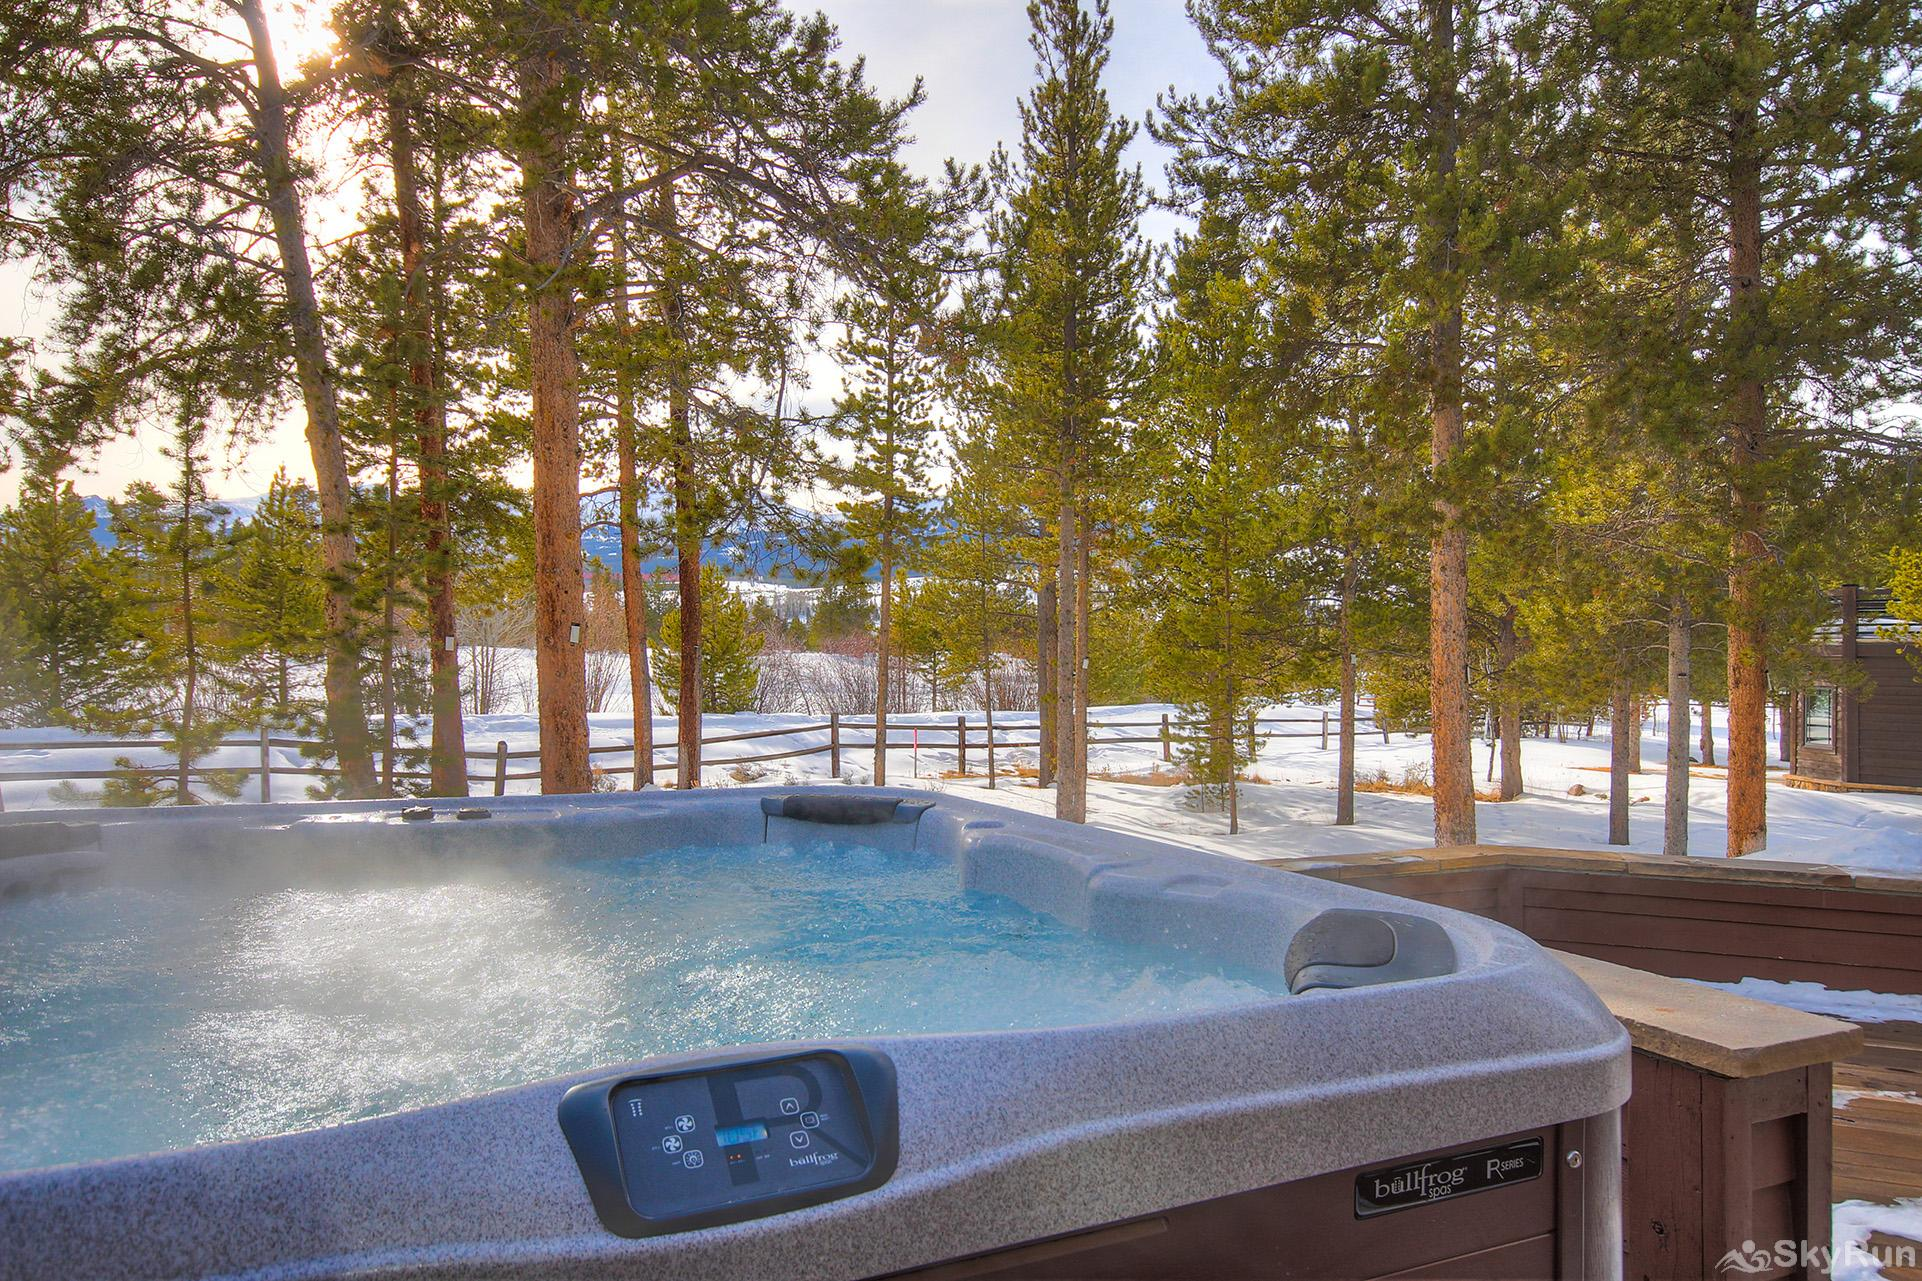 Marksberry Lodge Soak in the private hot tub after a day of fun adventures!